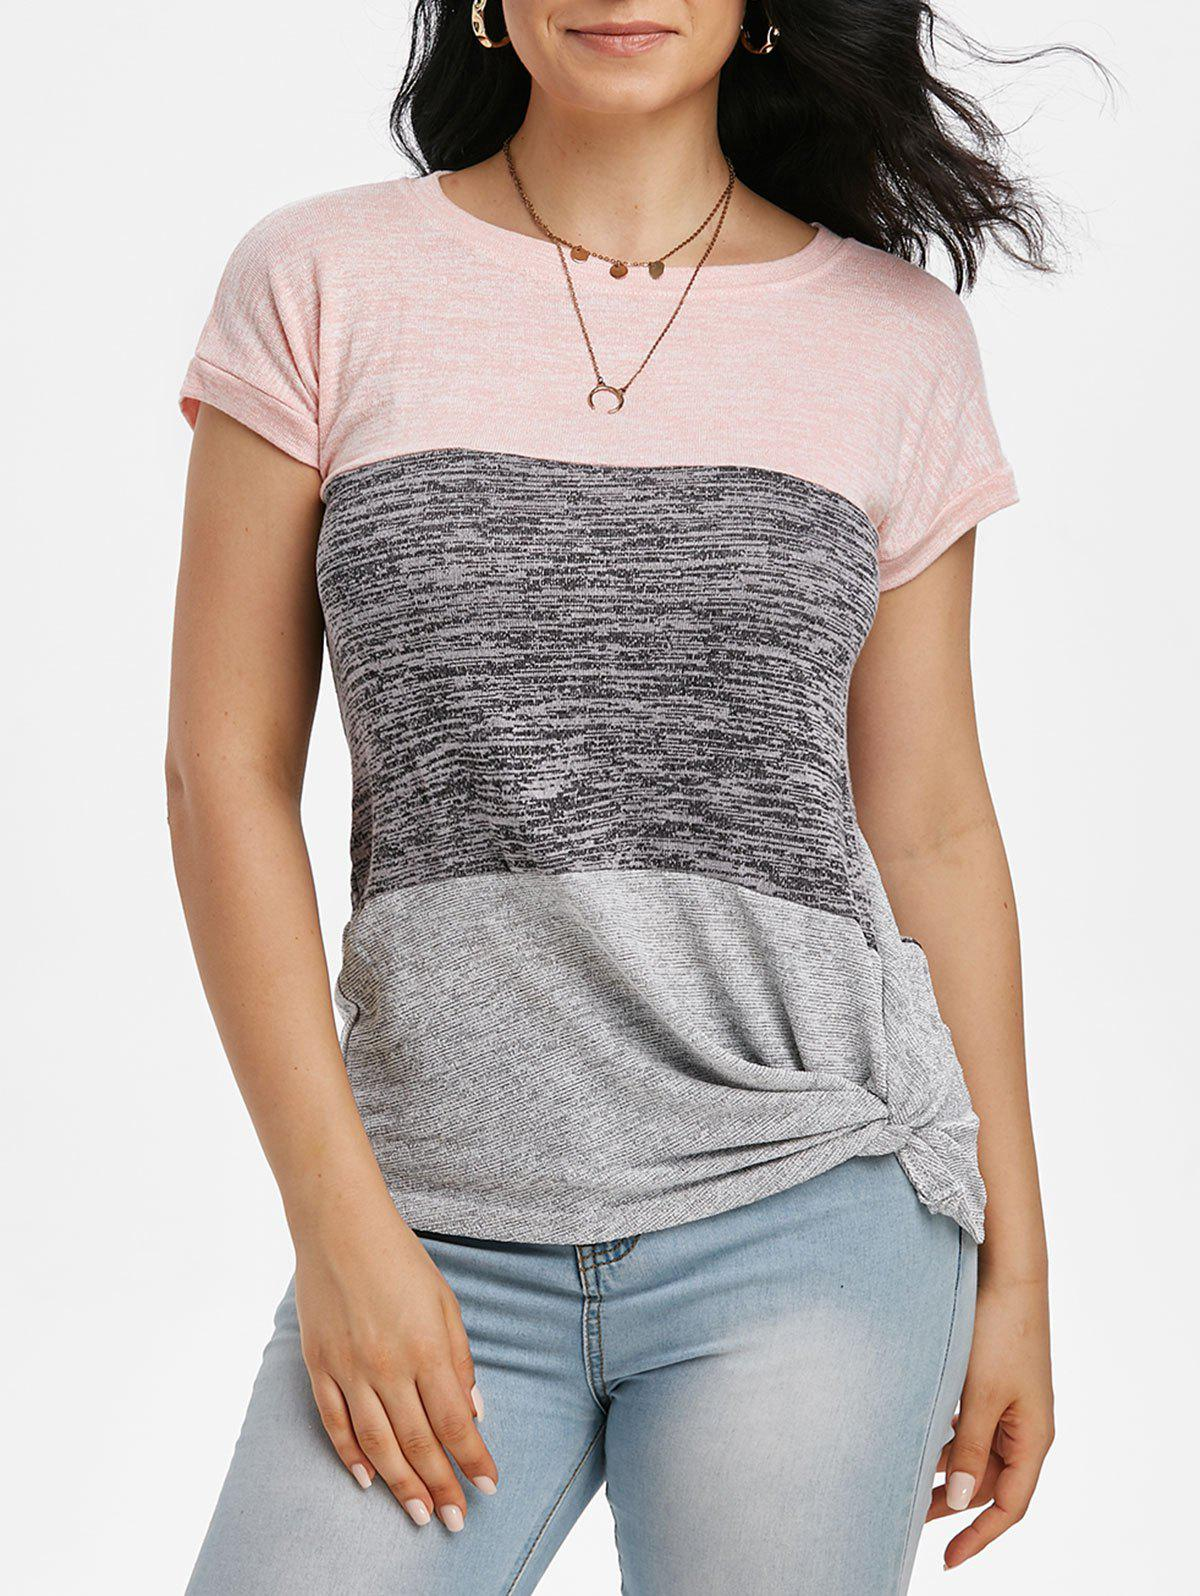 Colorblock Batwing Sleeve Twisted T-shirt - LIGHT PINK M